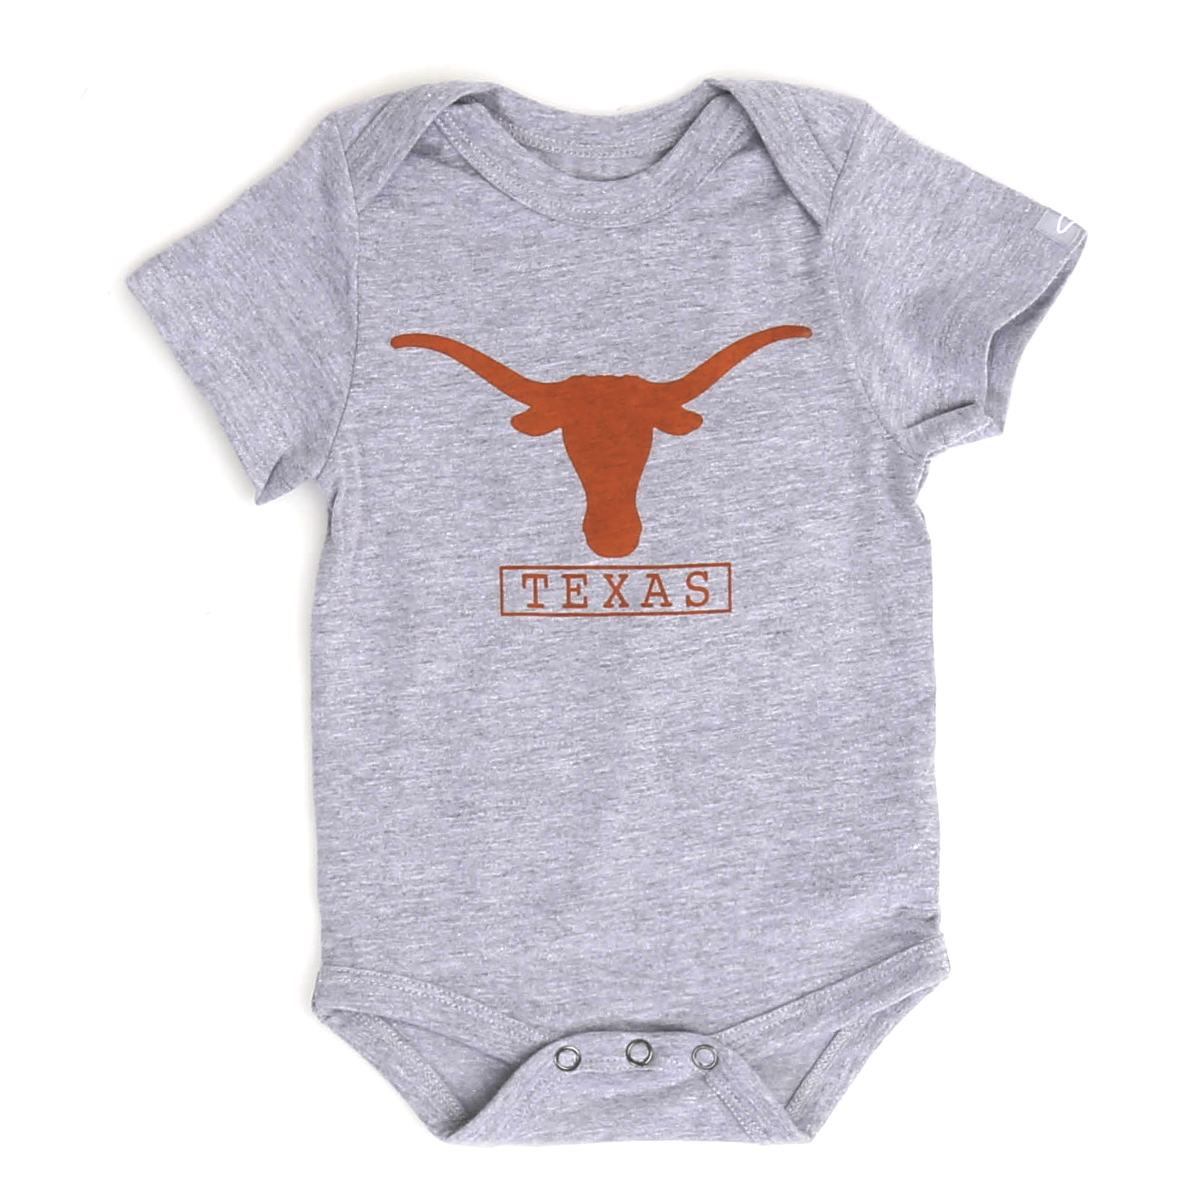 Details about  /Texas Longhorns Baby Creeper 18 Months New Free Usa Shipping One Piece